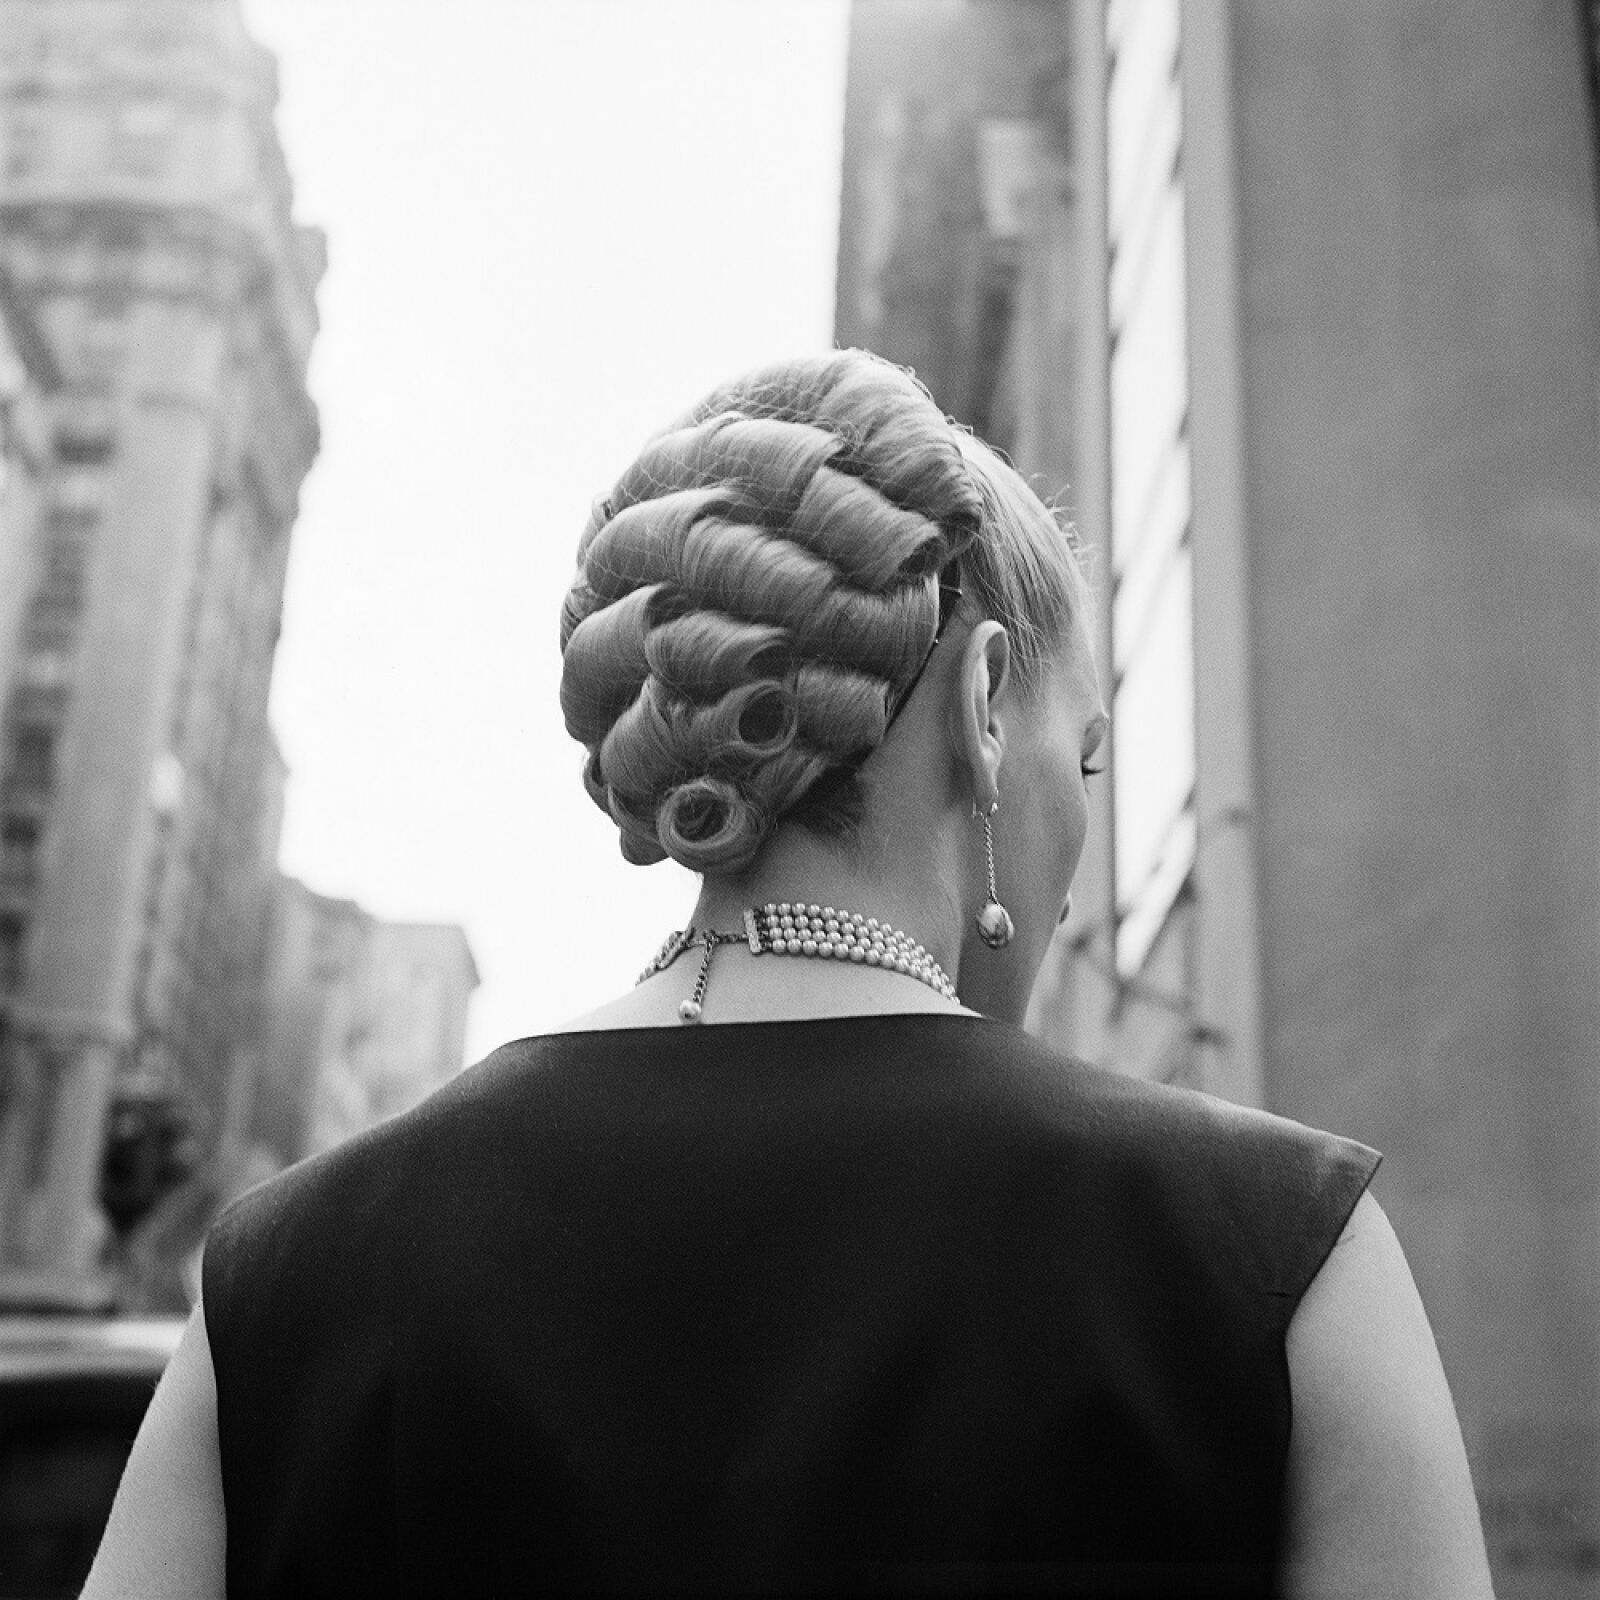 """""""New York, 3 septembre 1954"""" de Vivian MAIER © Estate of Vivian Maier, Courtesy of Maloof Collection and Howard Greenberg Gallery, NY"""